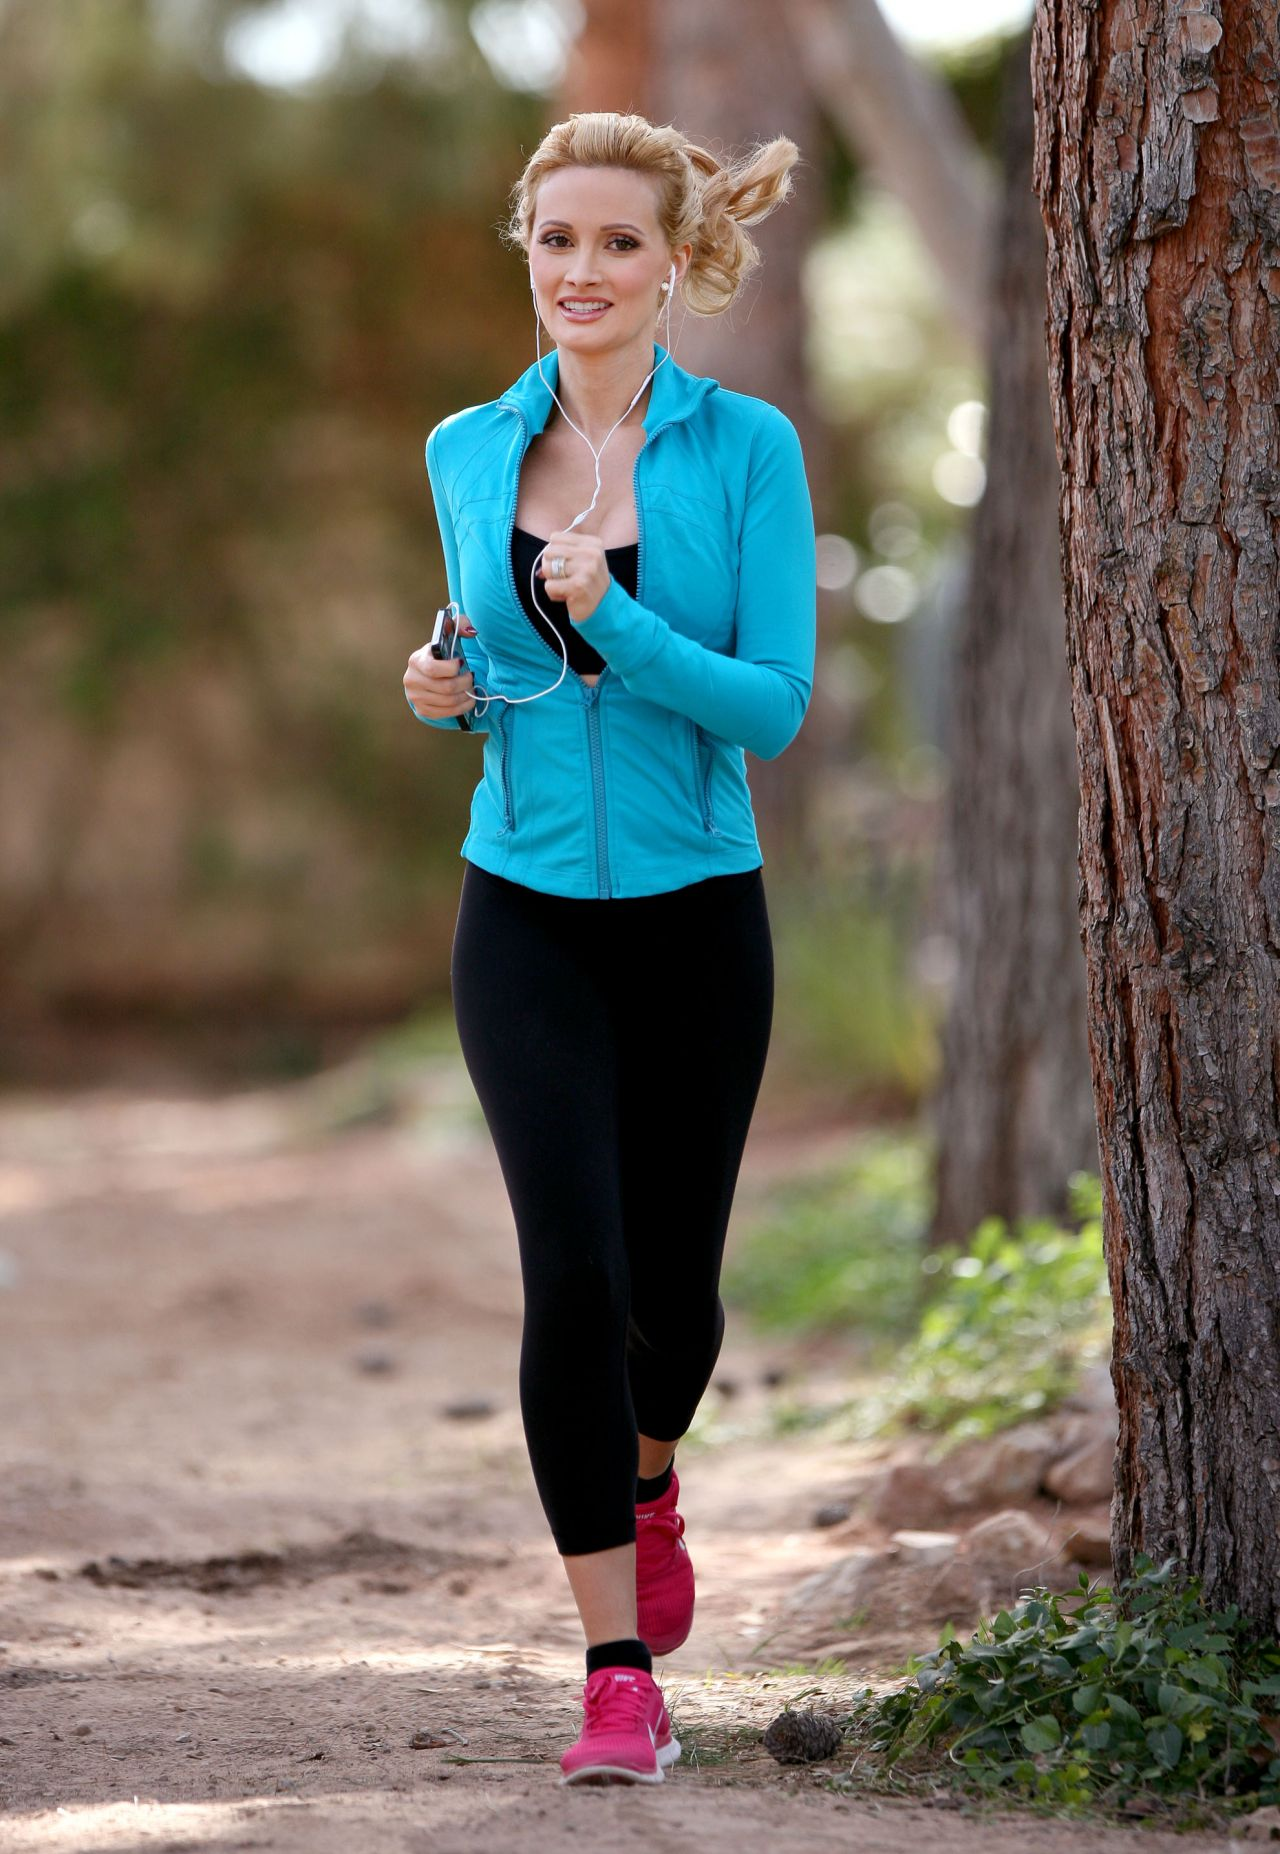 Holly Madison Takes A Jog Near Her Home In Las Vegas